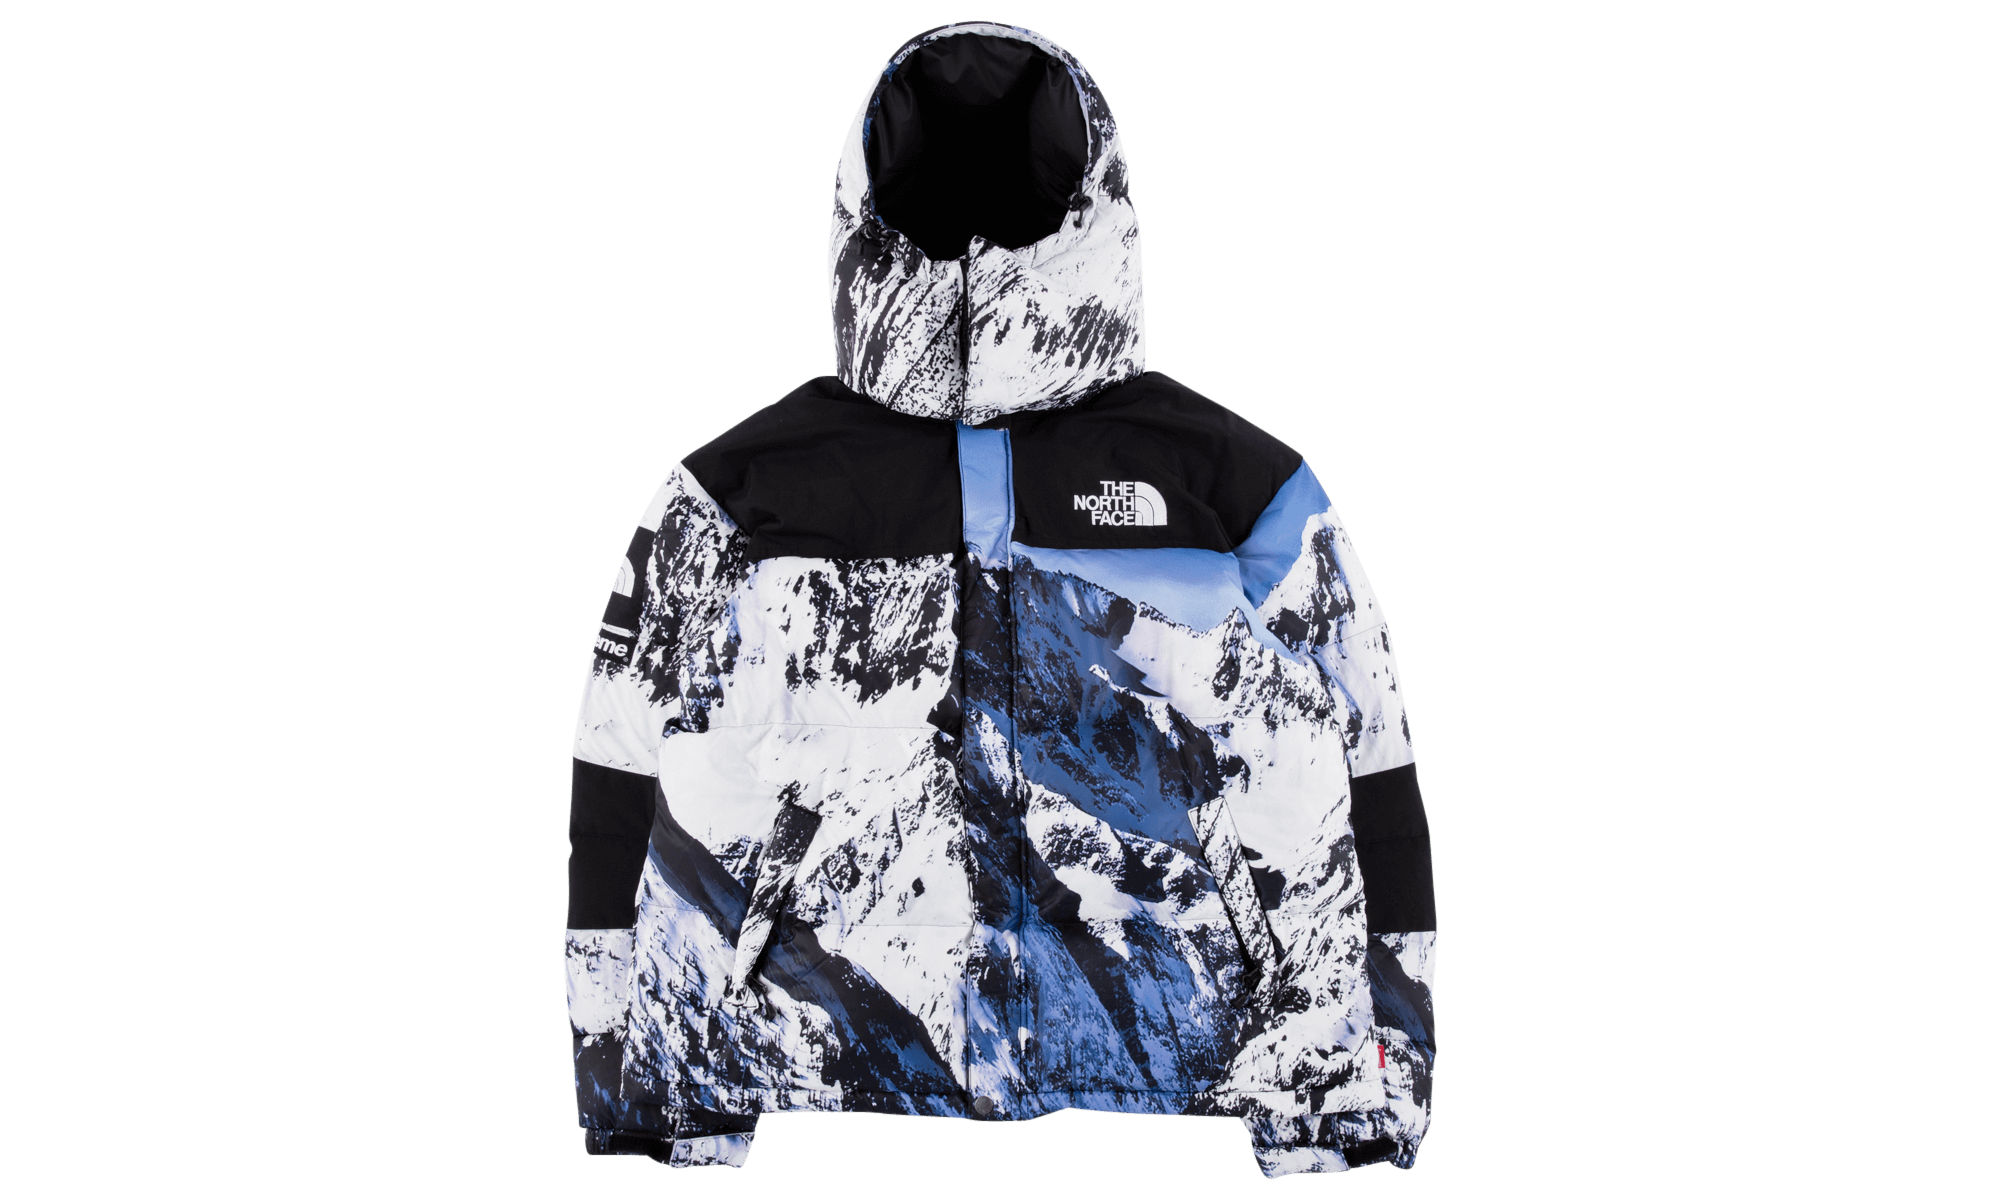 The North Face x Supreme Mountain Baltoro jacket is a highly